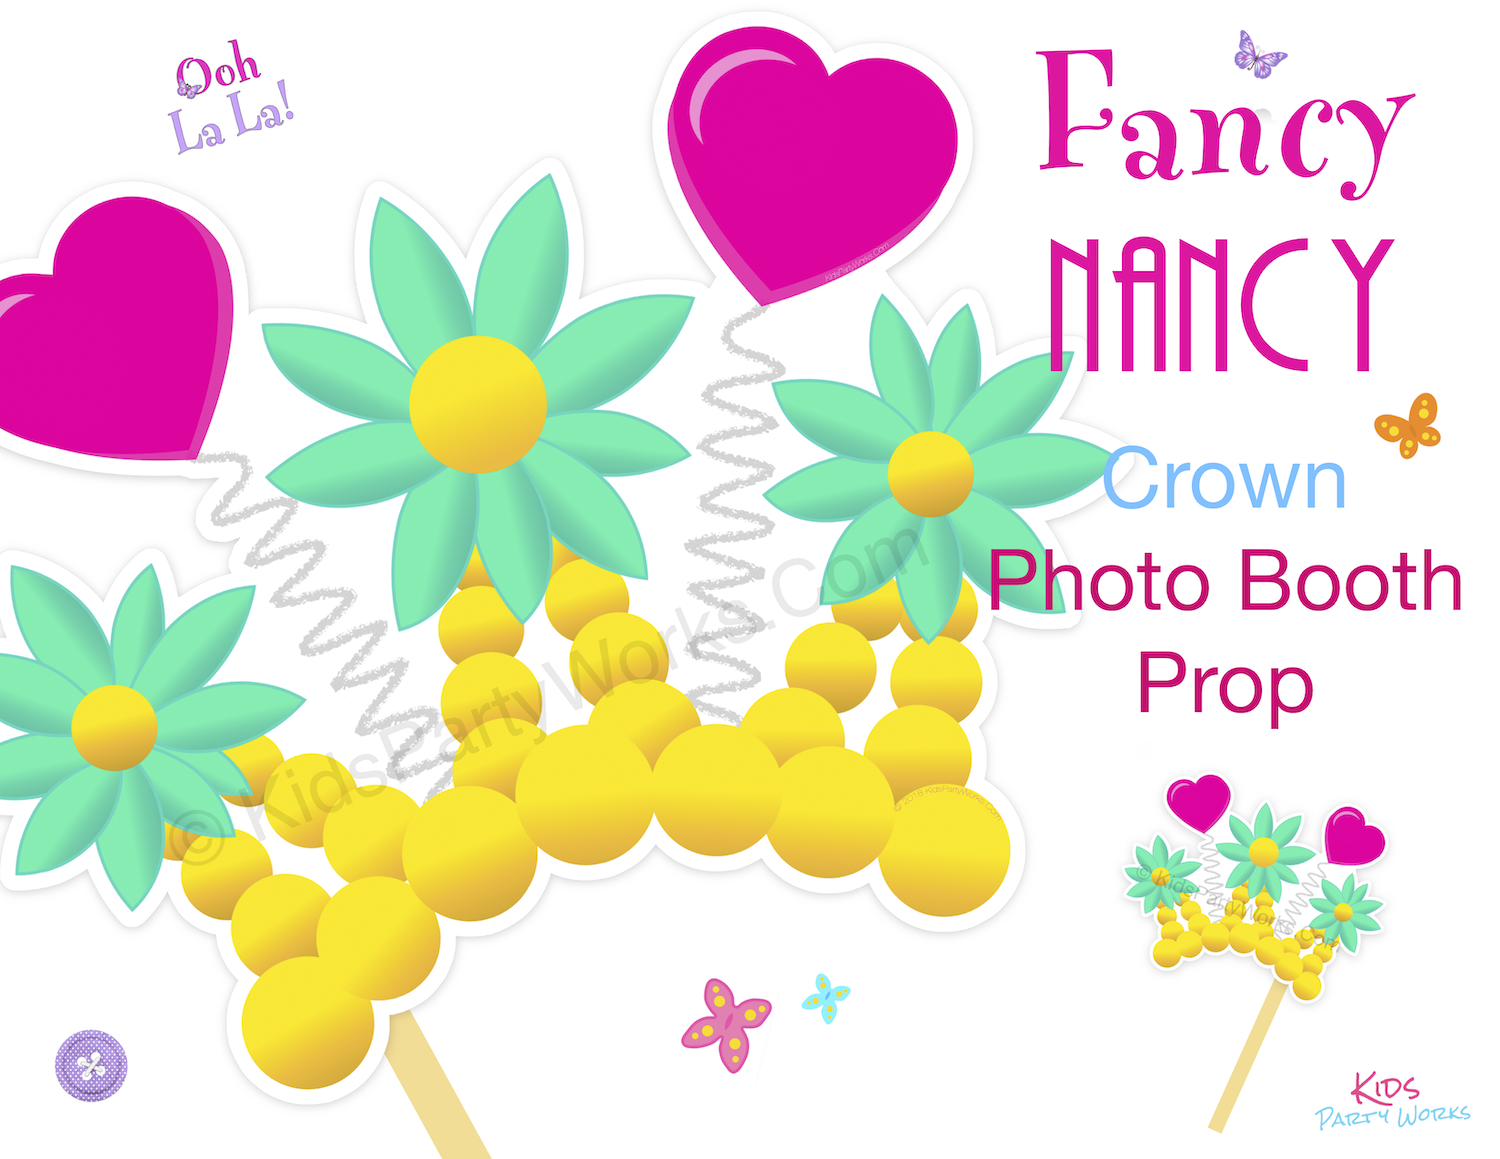 Fancy Nancy Crown Photo Booth Prop at KidsPartyWorks.Com. Free Printable